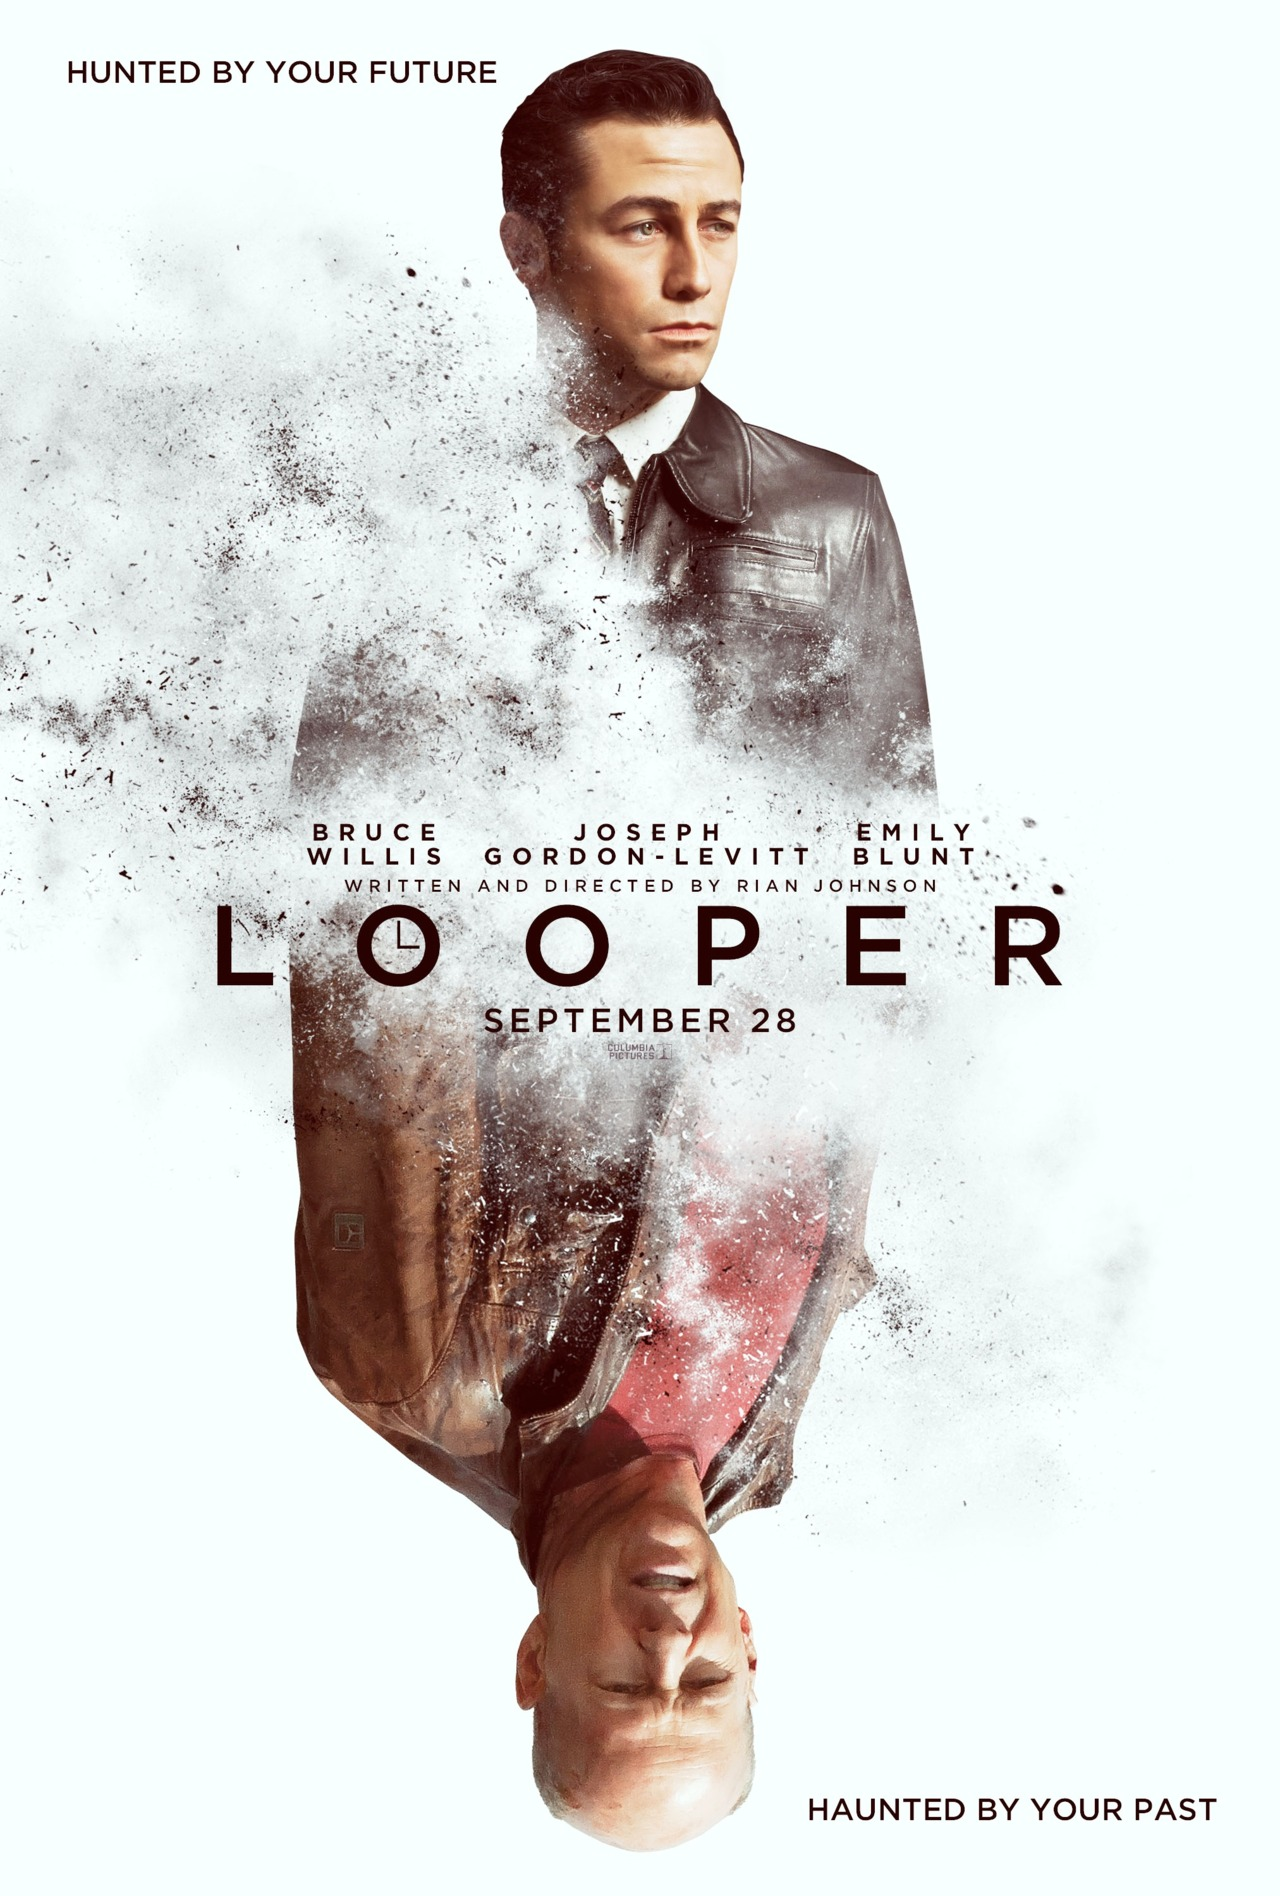 """untitledfilmblog: Looper (Dir. Rian Johnson) """"In the futuristic action thriller Looper, time travel will be invented – but it will be illegal and only available on the black market. When the mob wants to get rid of someone, they will send their target 30 years into the past, where a """"looper"""" – a hired gun, like Joe (Joseph Gordon-Levitt) – is waiting to mop up. Joe is getting rich and life is good… until the day the mob decides to """"close the loop,"""" sending back Joe's future self (Bruce Willis) for assassination."""" Congrats joe!!!"""